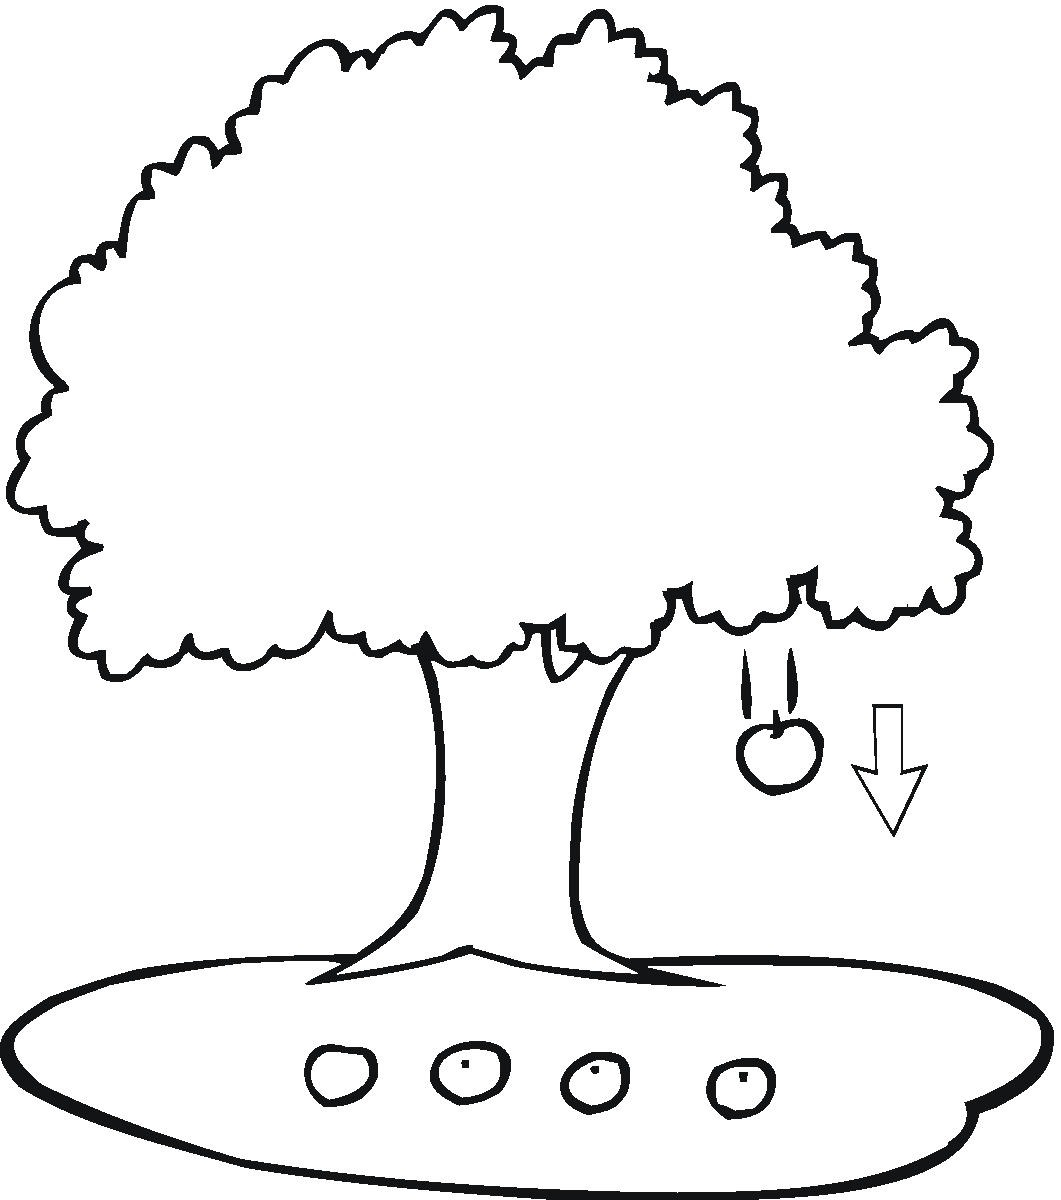 apple tree coloring page - apple tree coloring pages